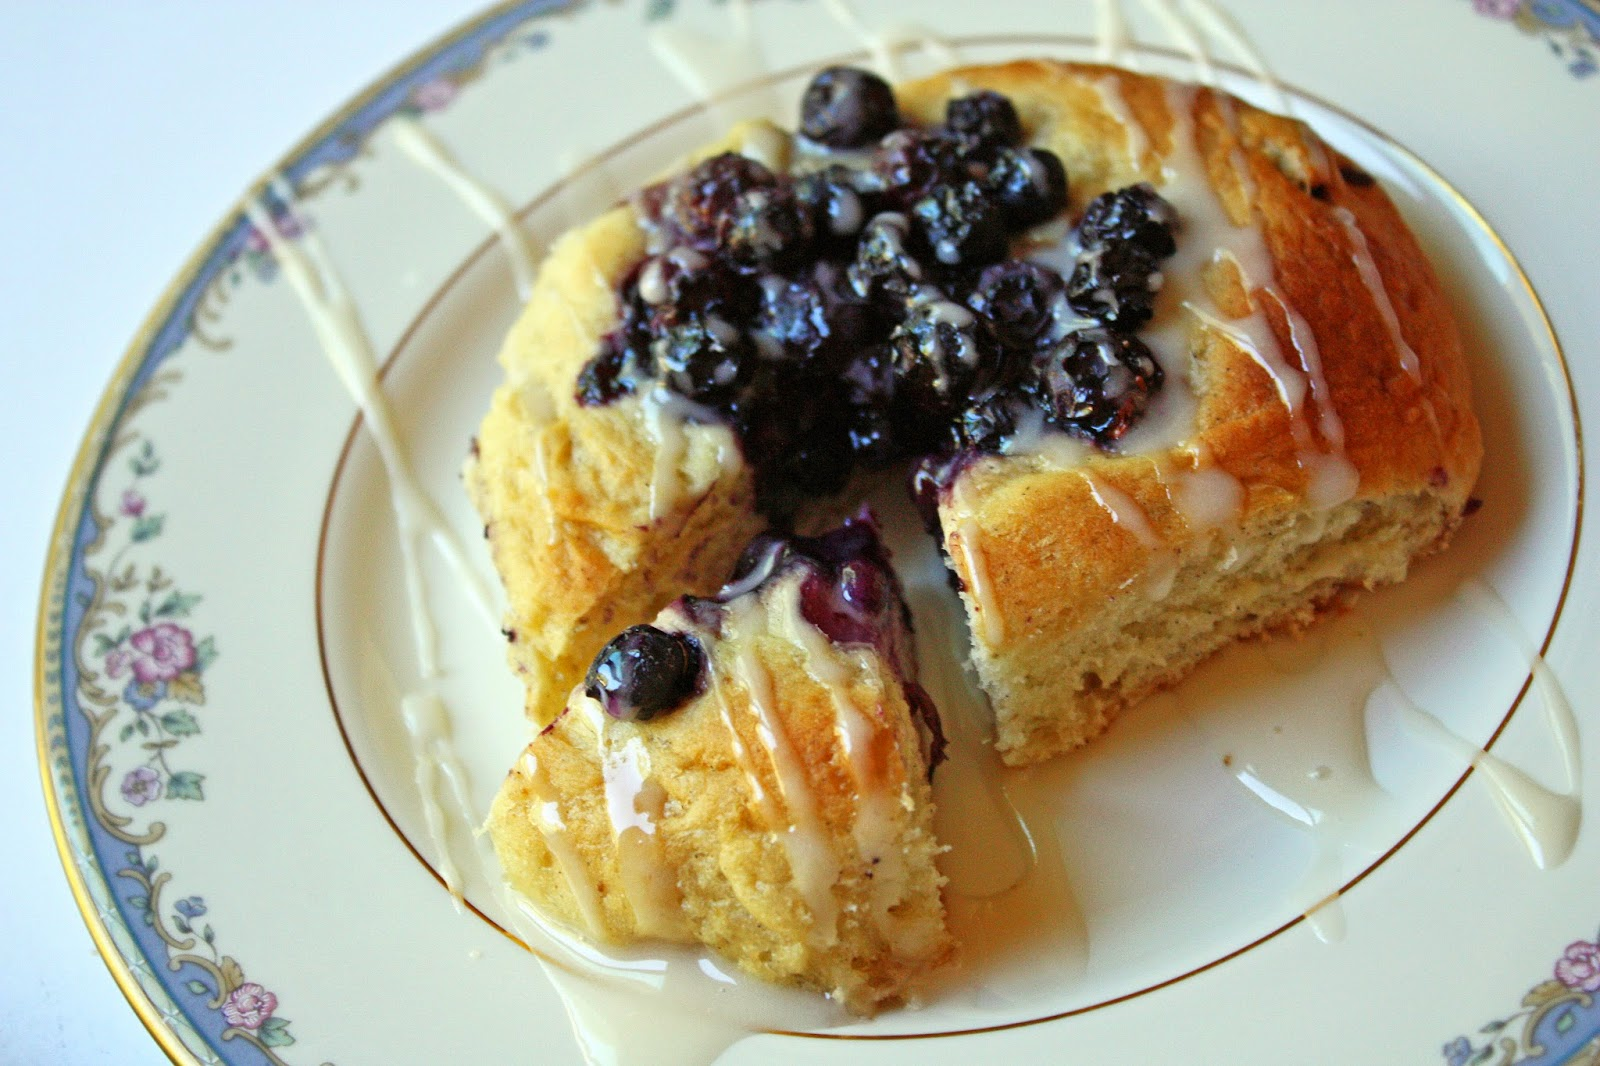 Finnish blueberry-filled buns with vanilla glaze